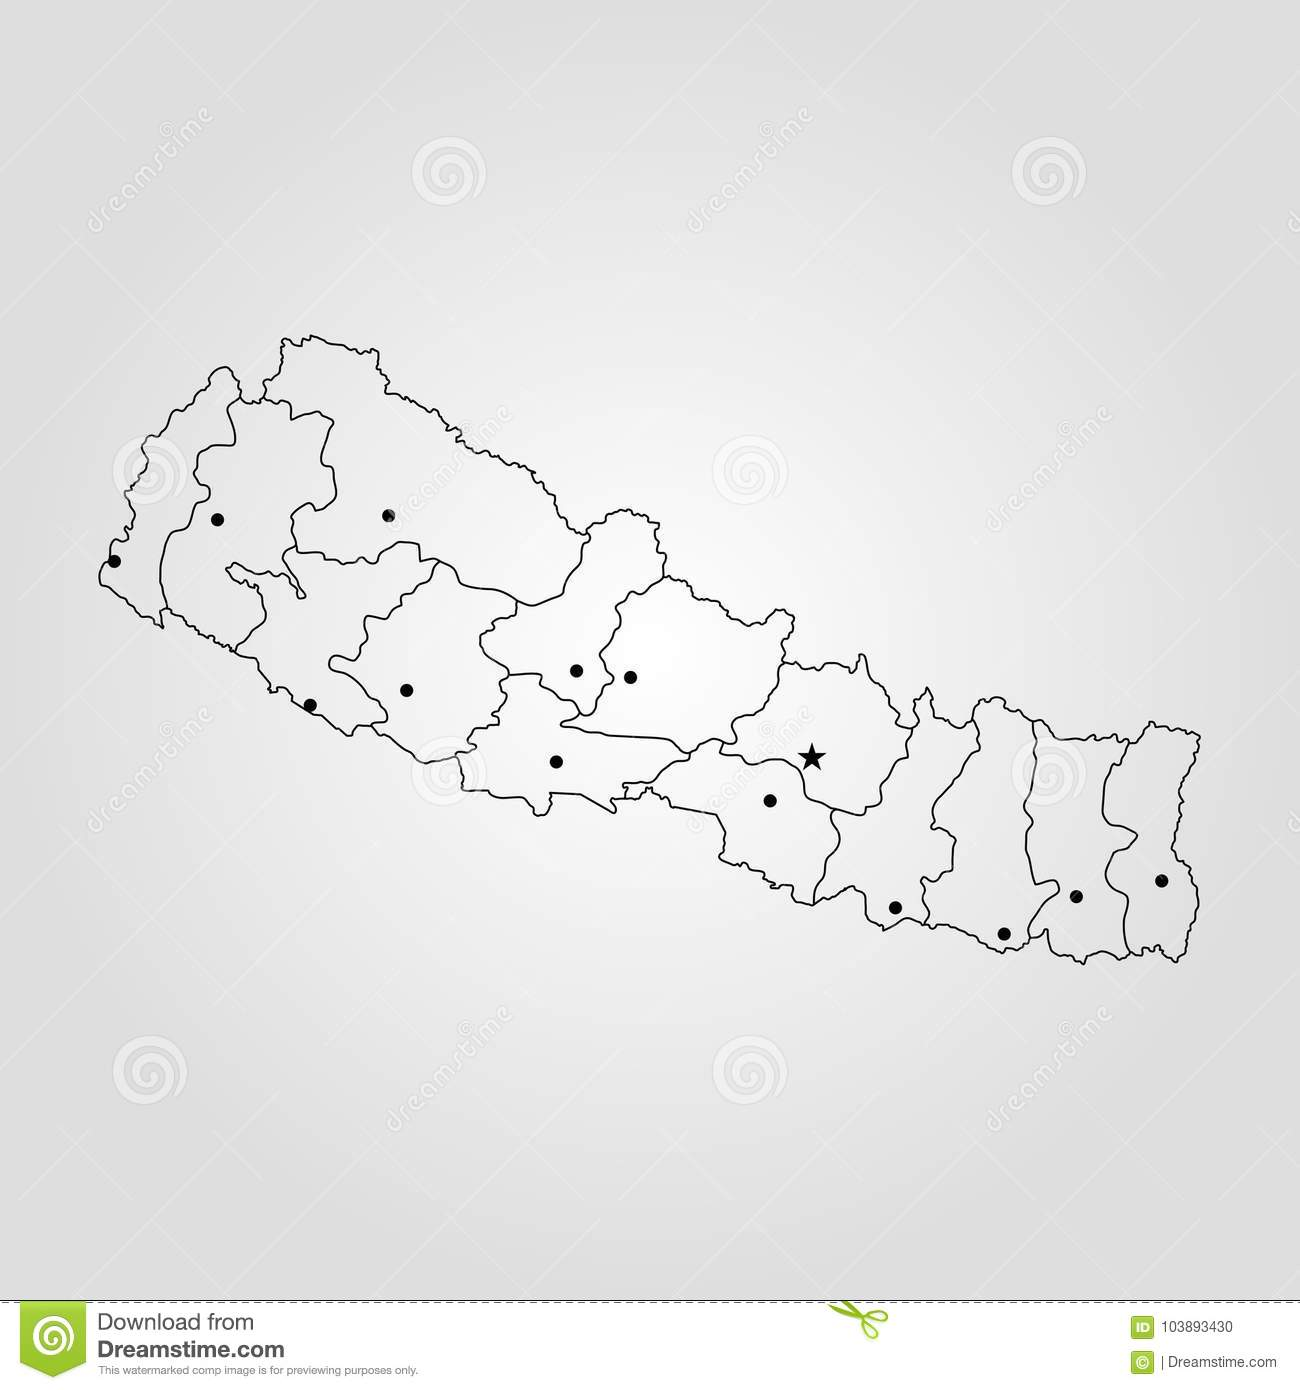 World Map Napal.Map Of Nepal Stock Illustration Illustration Of Nation 103893430